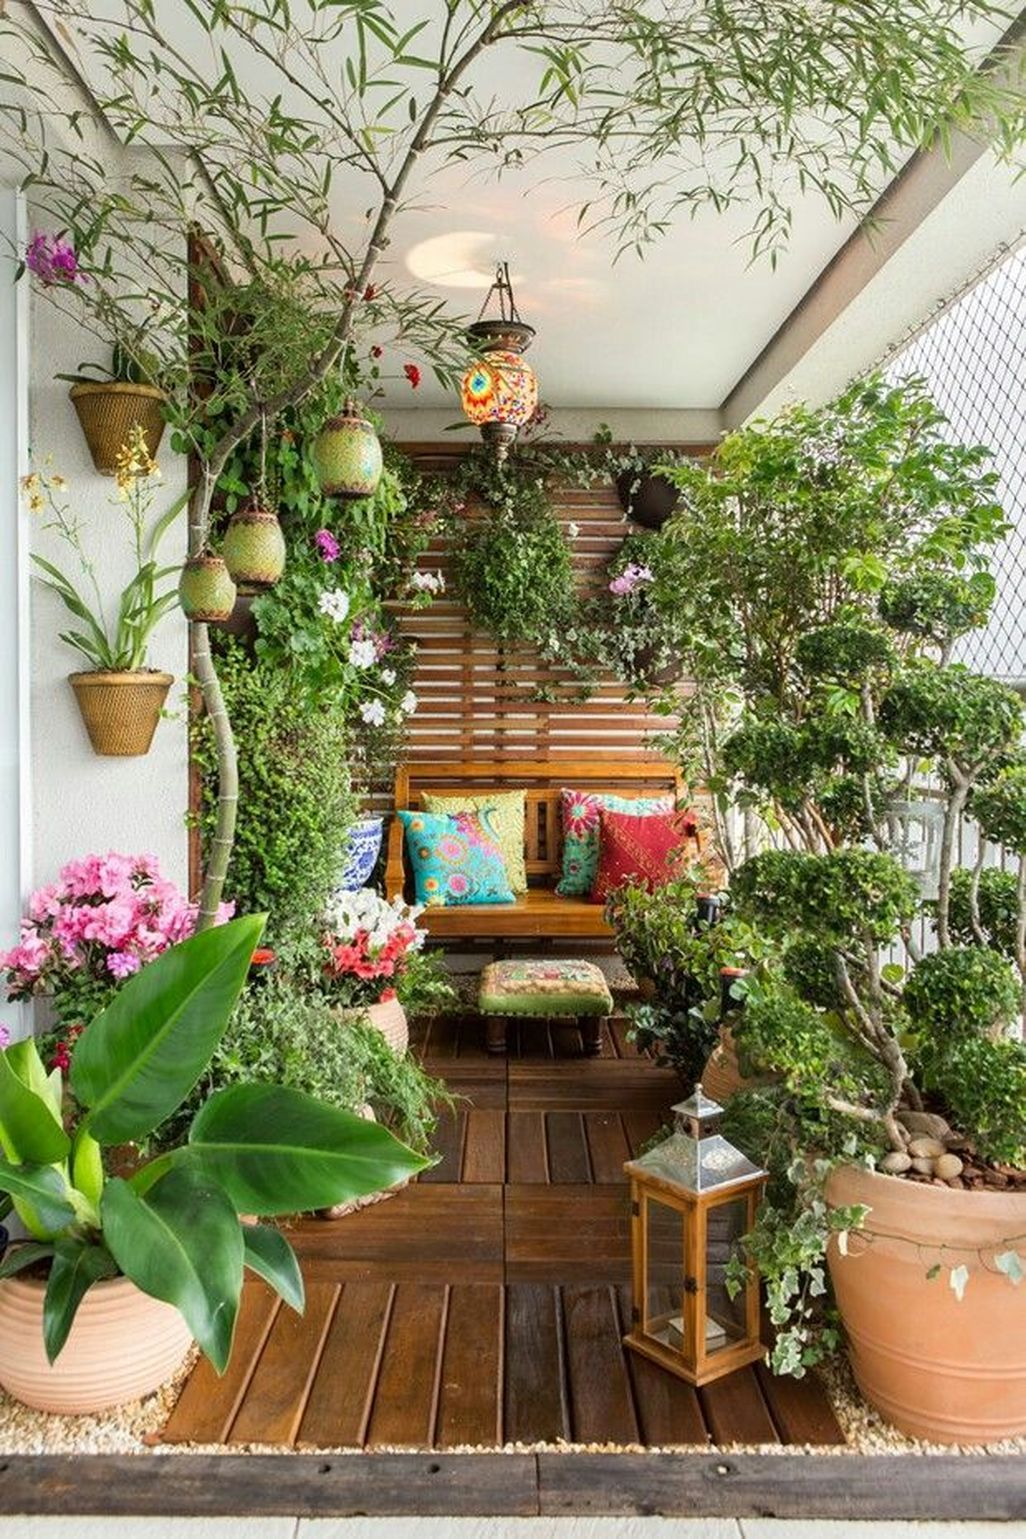 41 Cozy And Beautiful Green Balcony Ideas Outdoor And 400 x 300